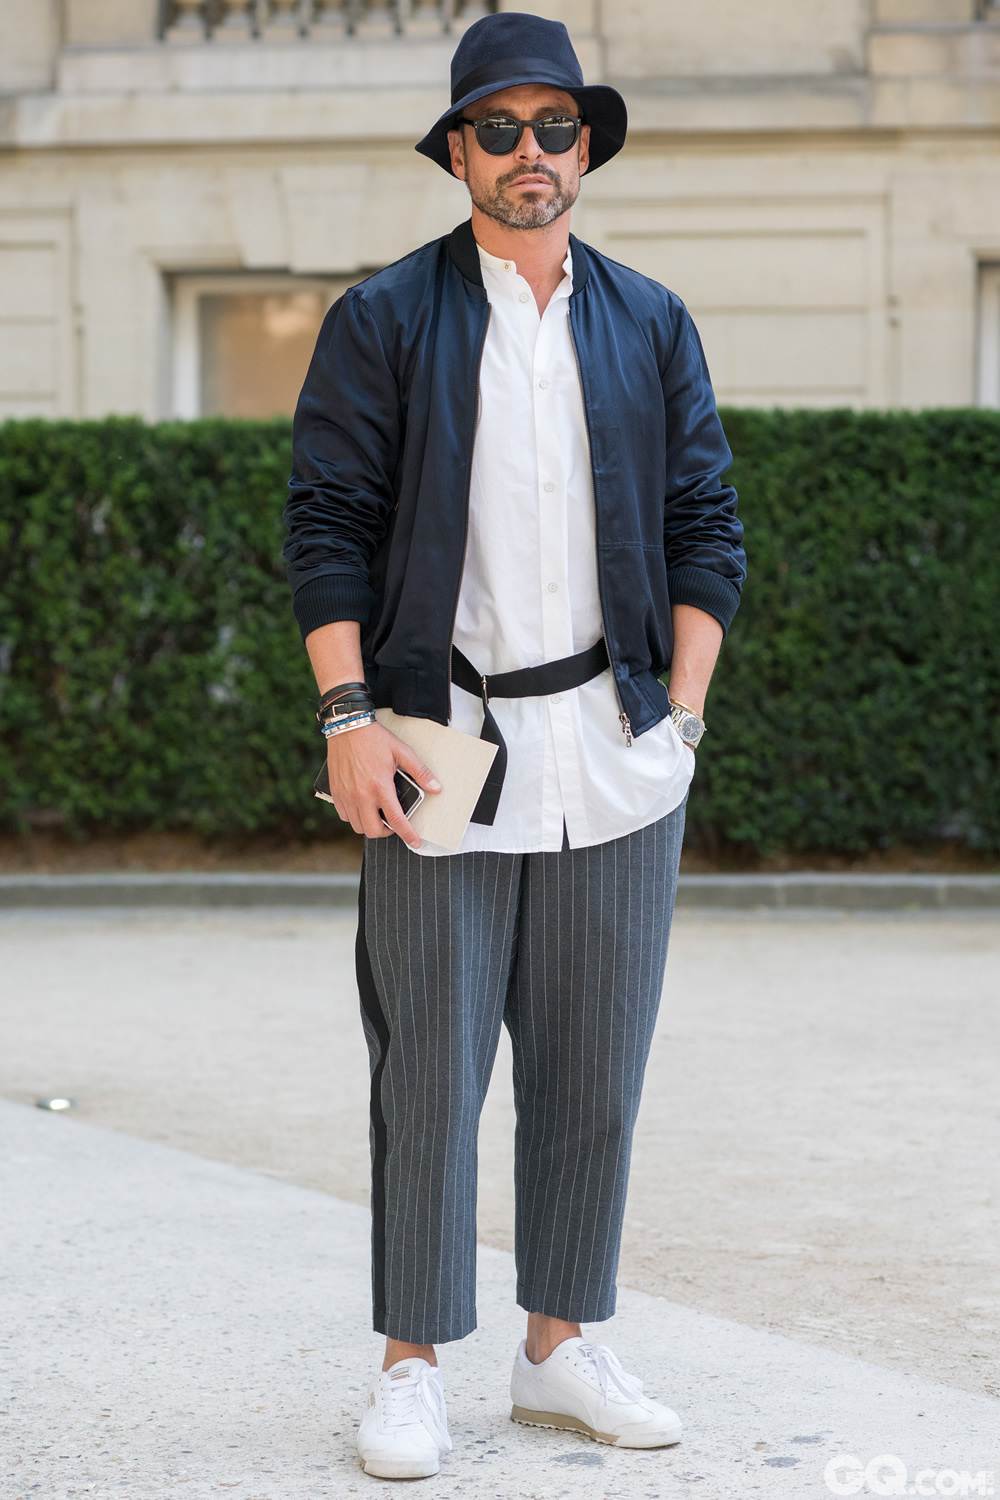 Alex Hat: Borsalino Jacket: Dries Van Noten Shirt: Rag & Bone Pants: Sacai Sneakers: Rebook  Inspiration: I just wanted to play with color blocking and between blue and white Oldest piece: My hat bought a few years ago in Milan (我只想玩转蓝白色块的配搭)